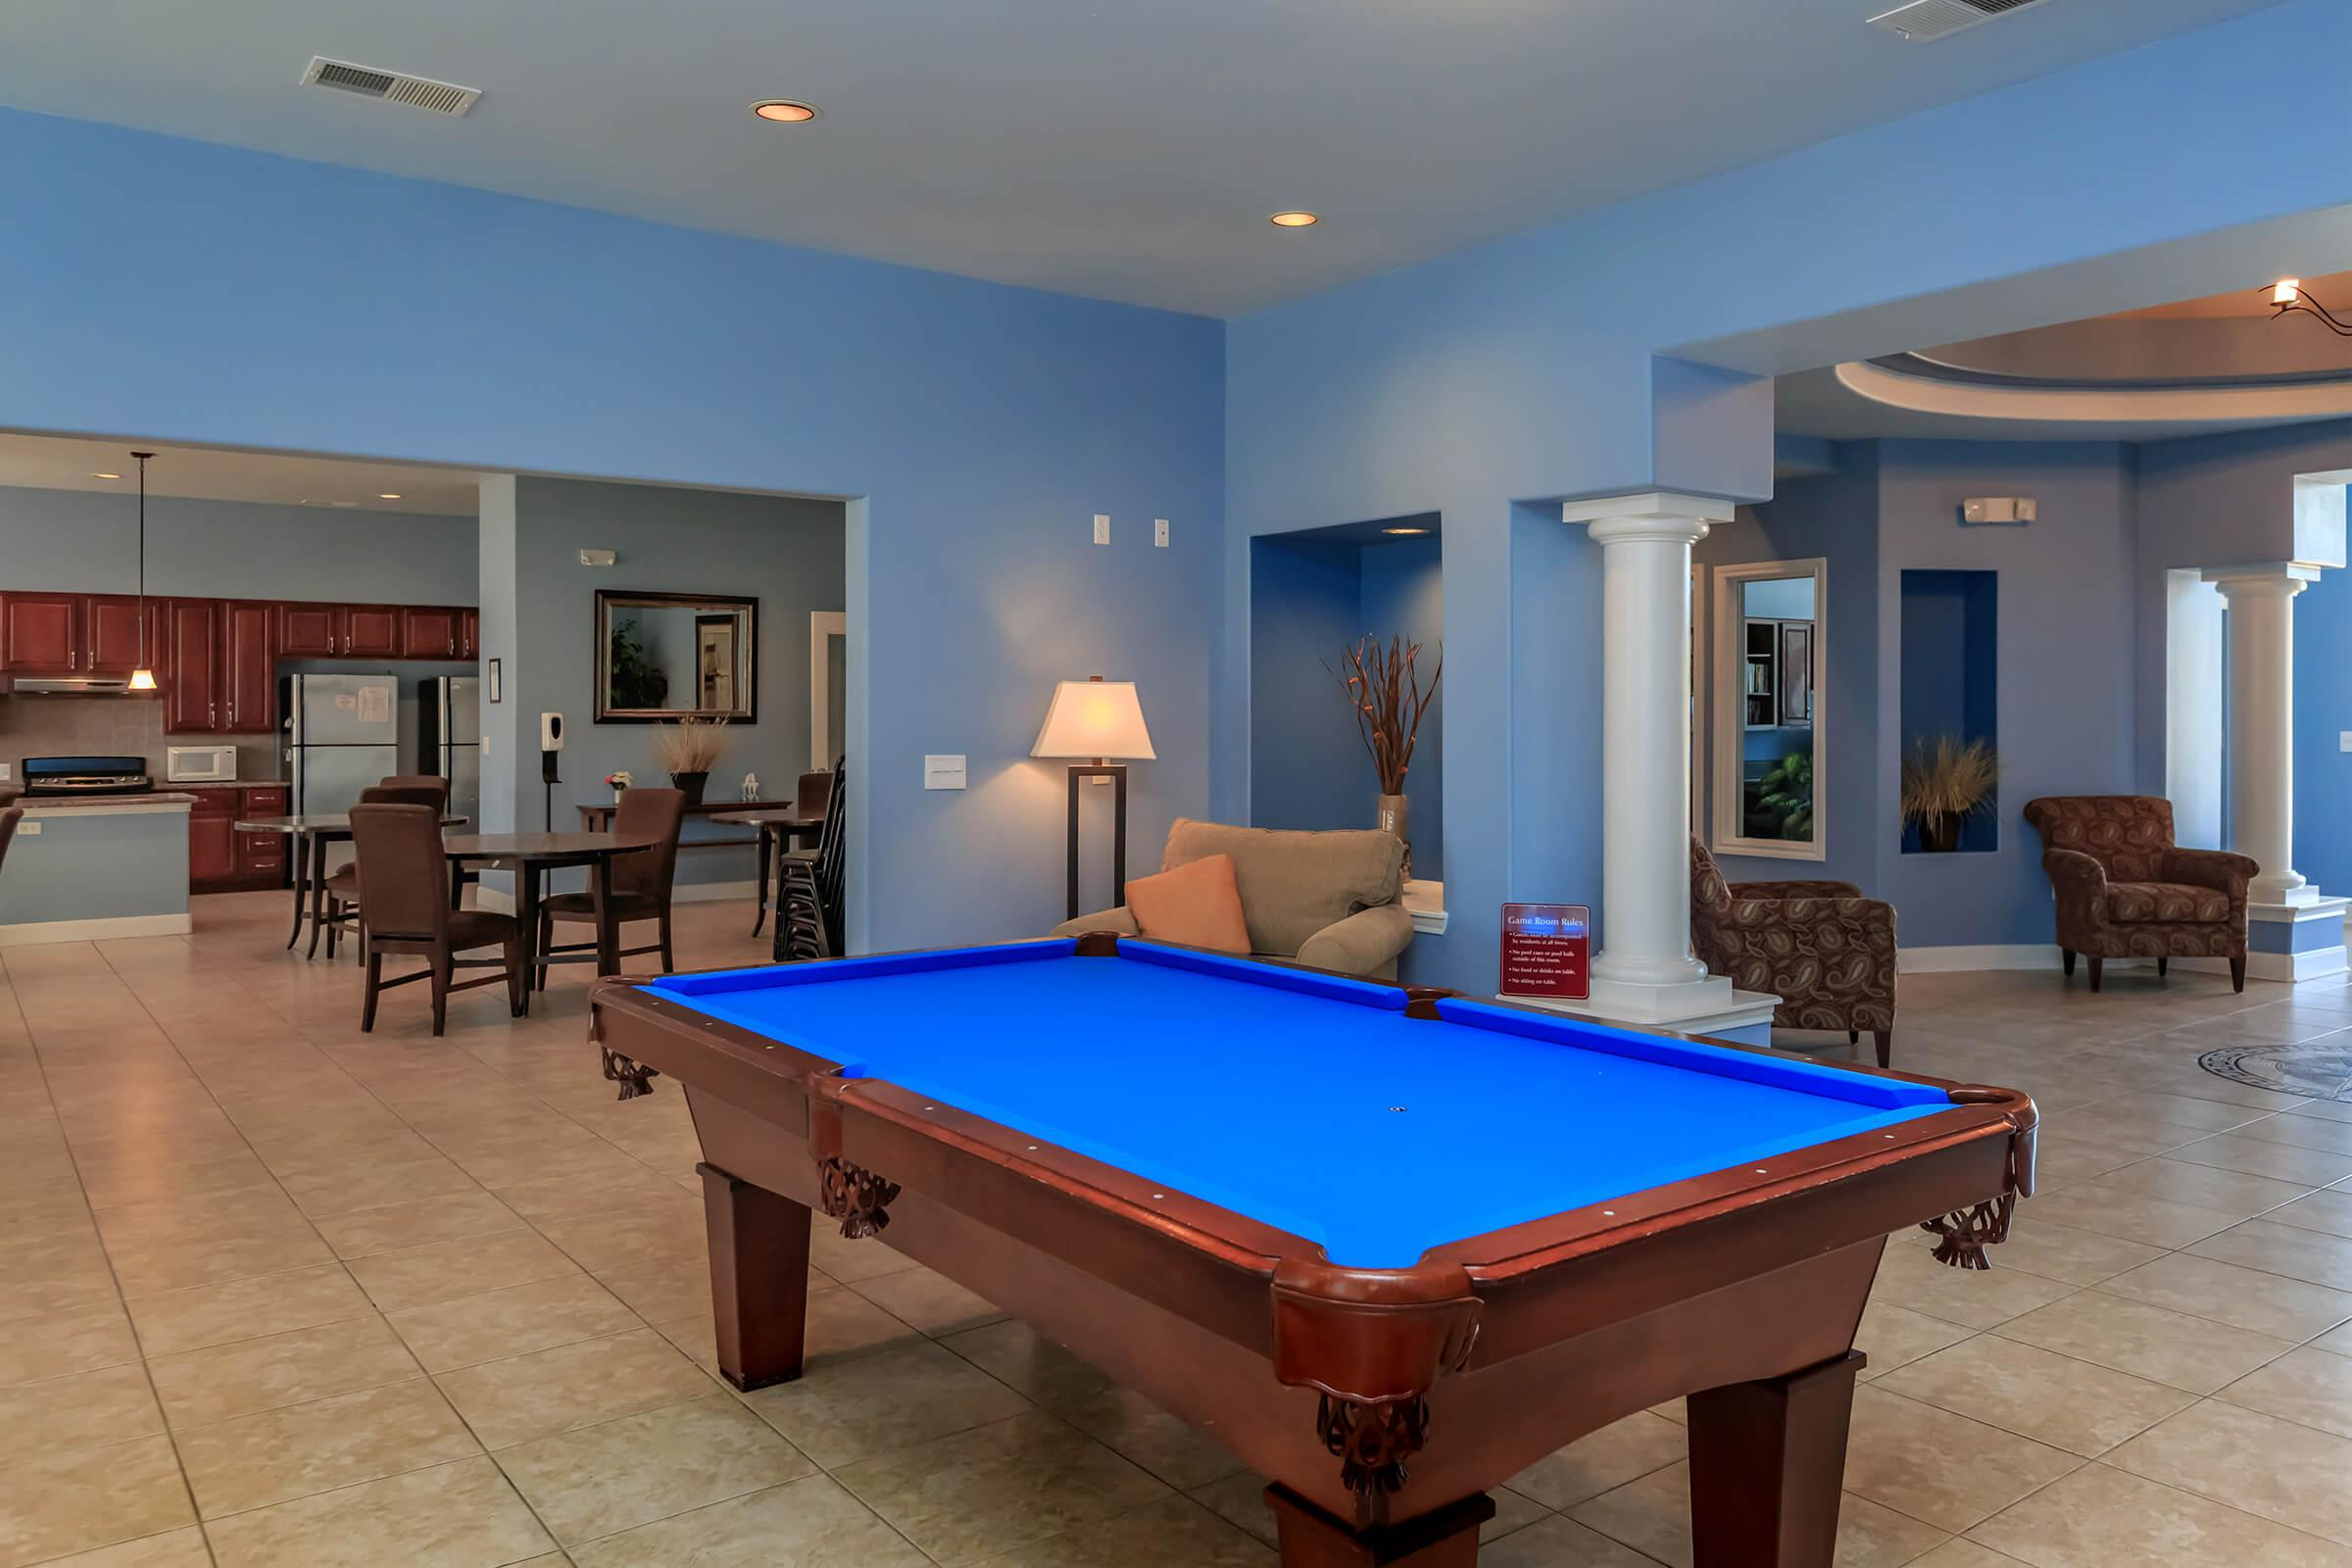 a large empty room with a pool table